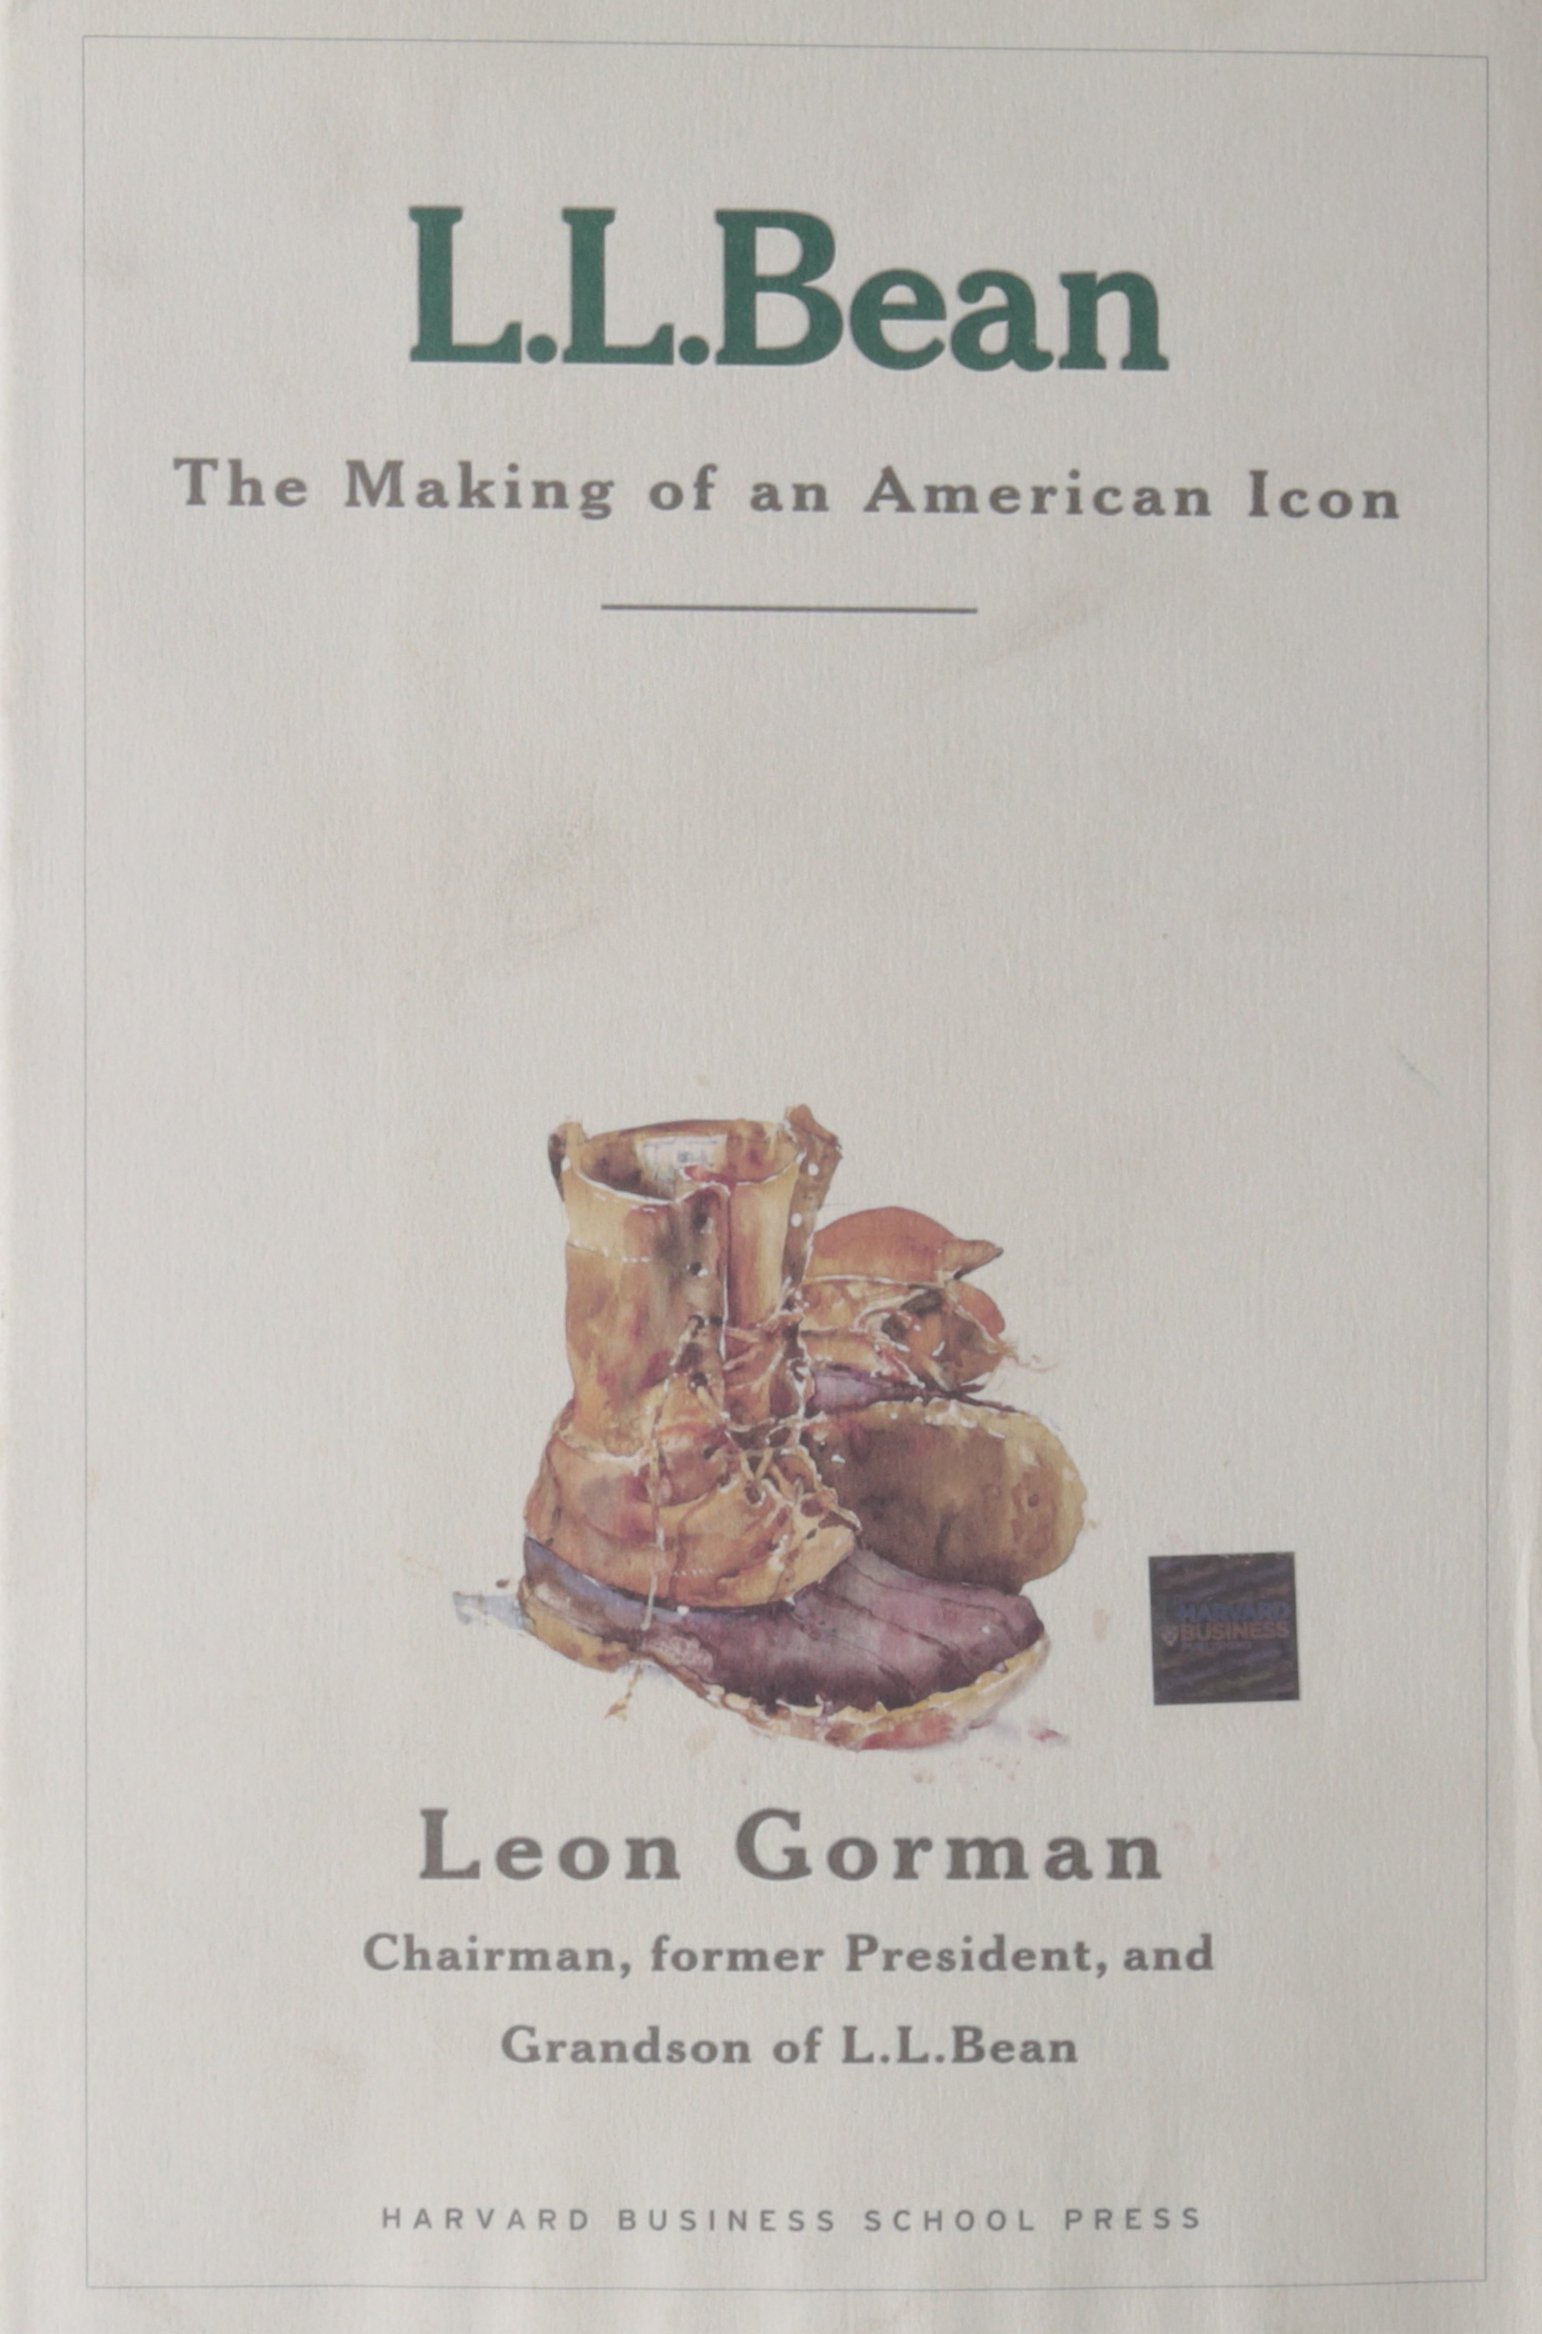 b561fbf41eb L.L. Bean  The Making of an American Icon Hardcover – October 3